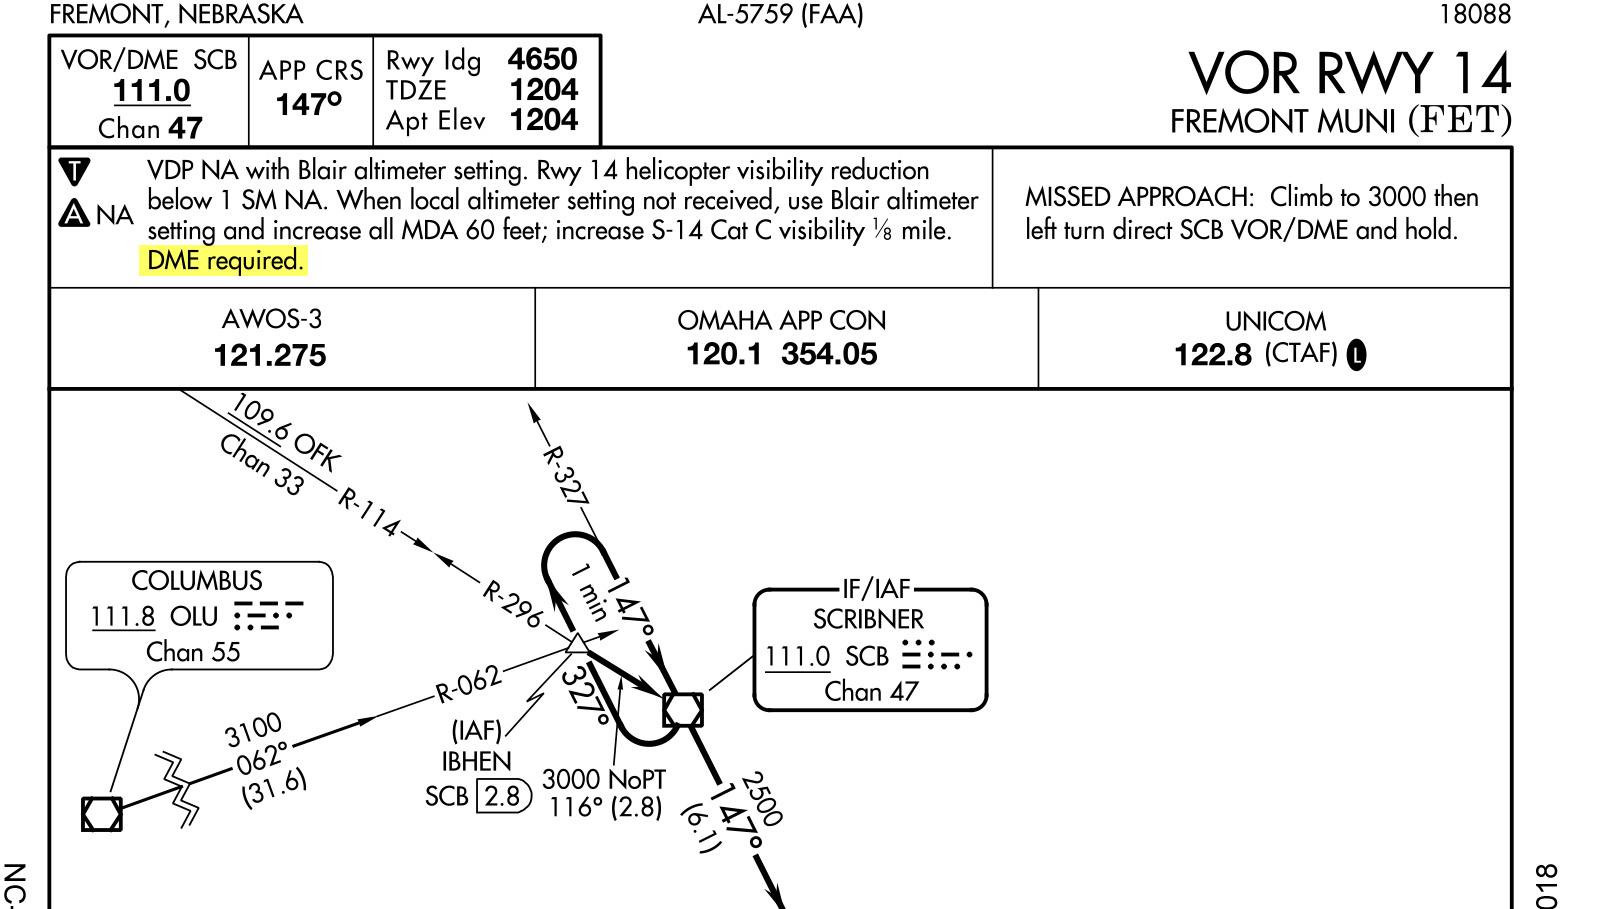 Pilots should give special attention to the notes section of instrument approach plates.